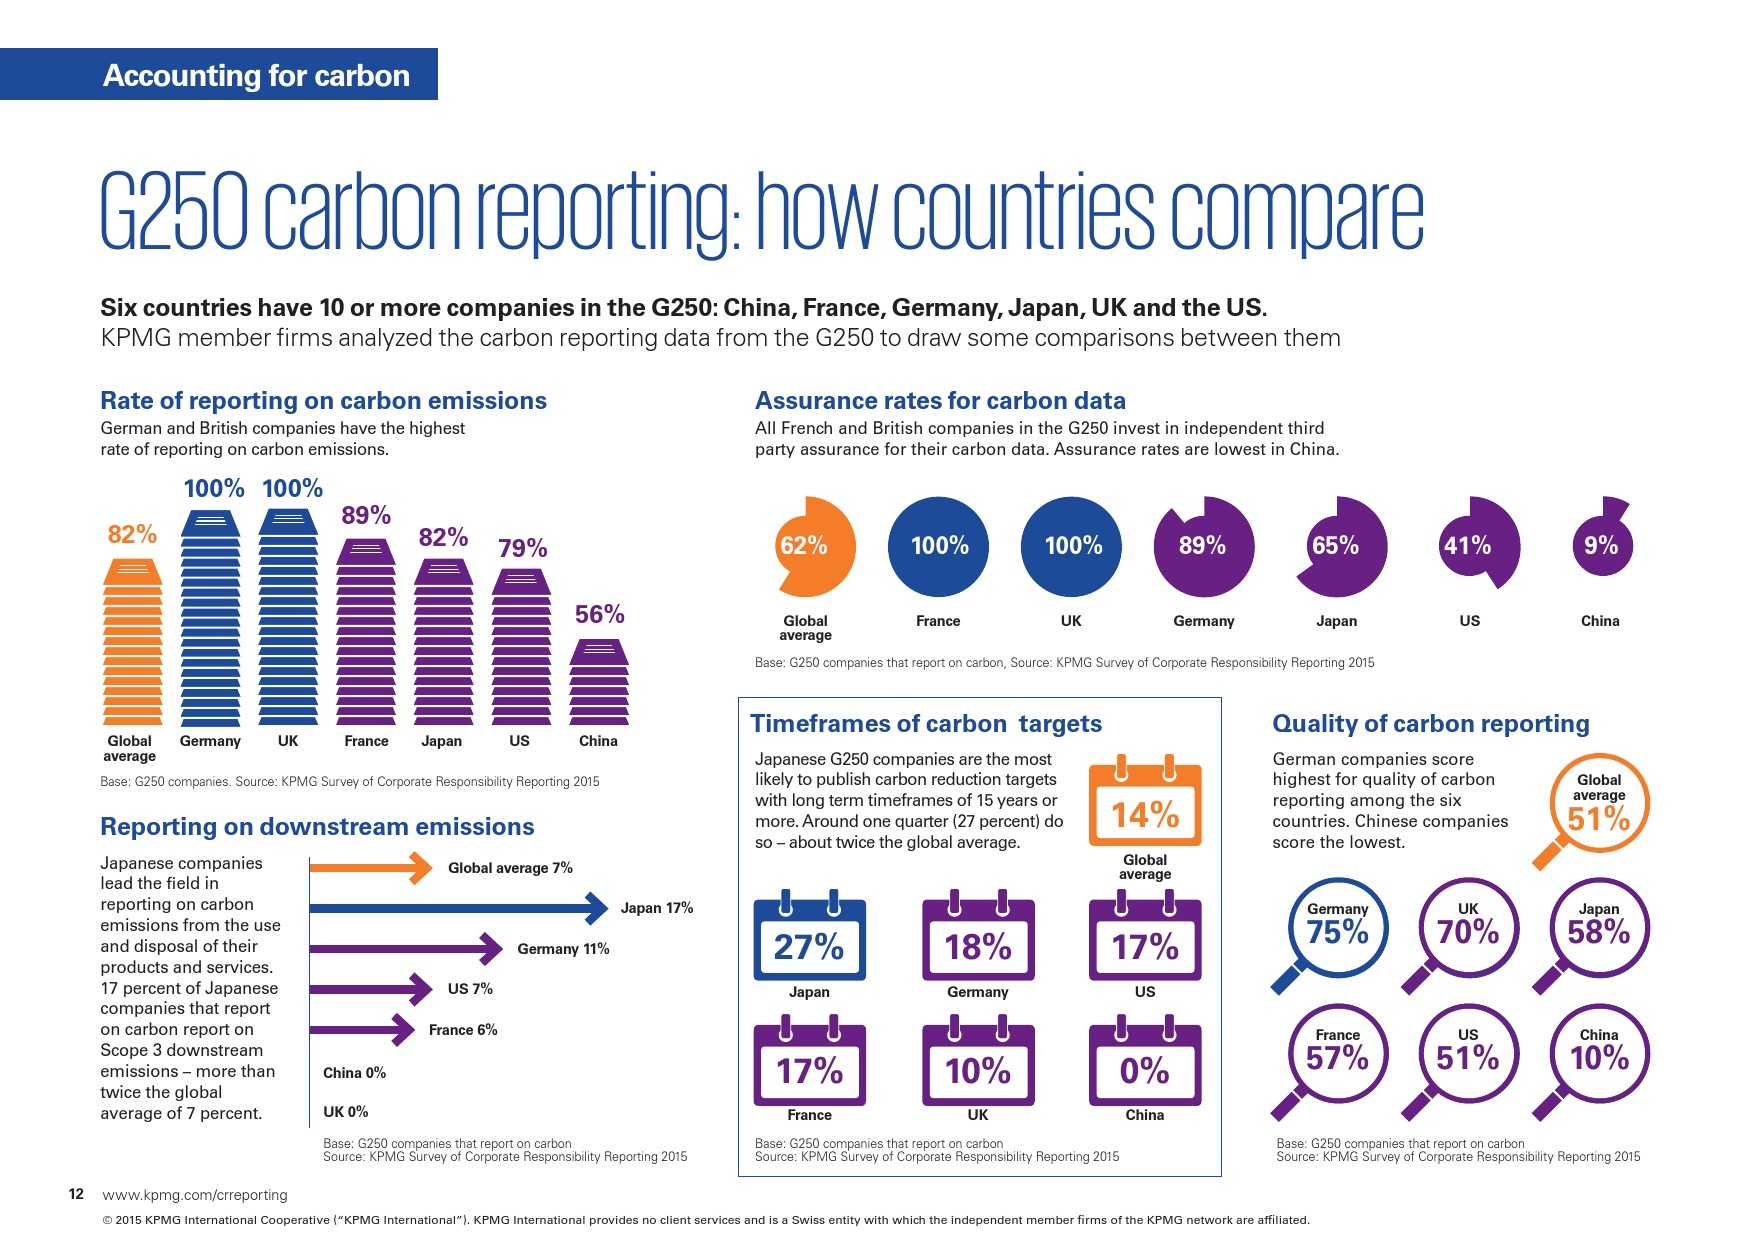 kpmg-international-survey-of-corporate-responsibility-reporting-2015_000012